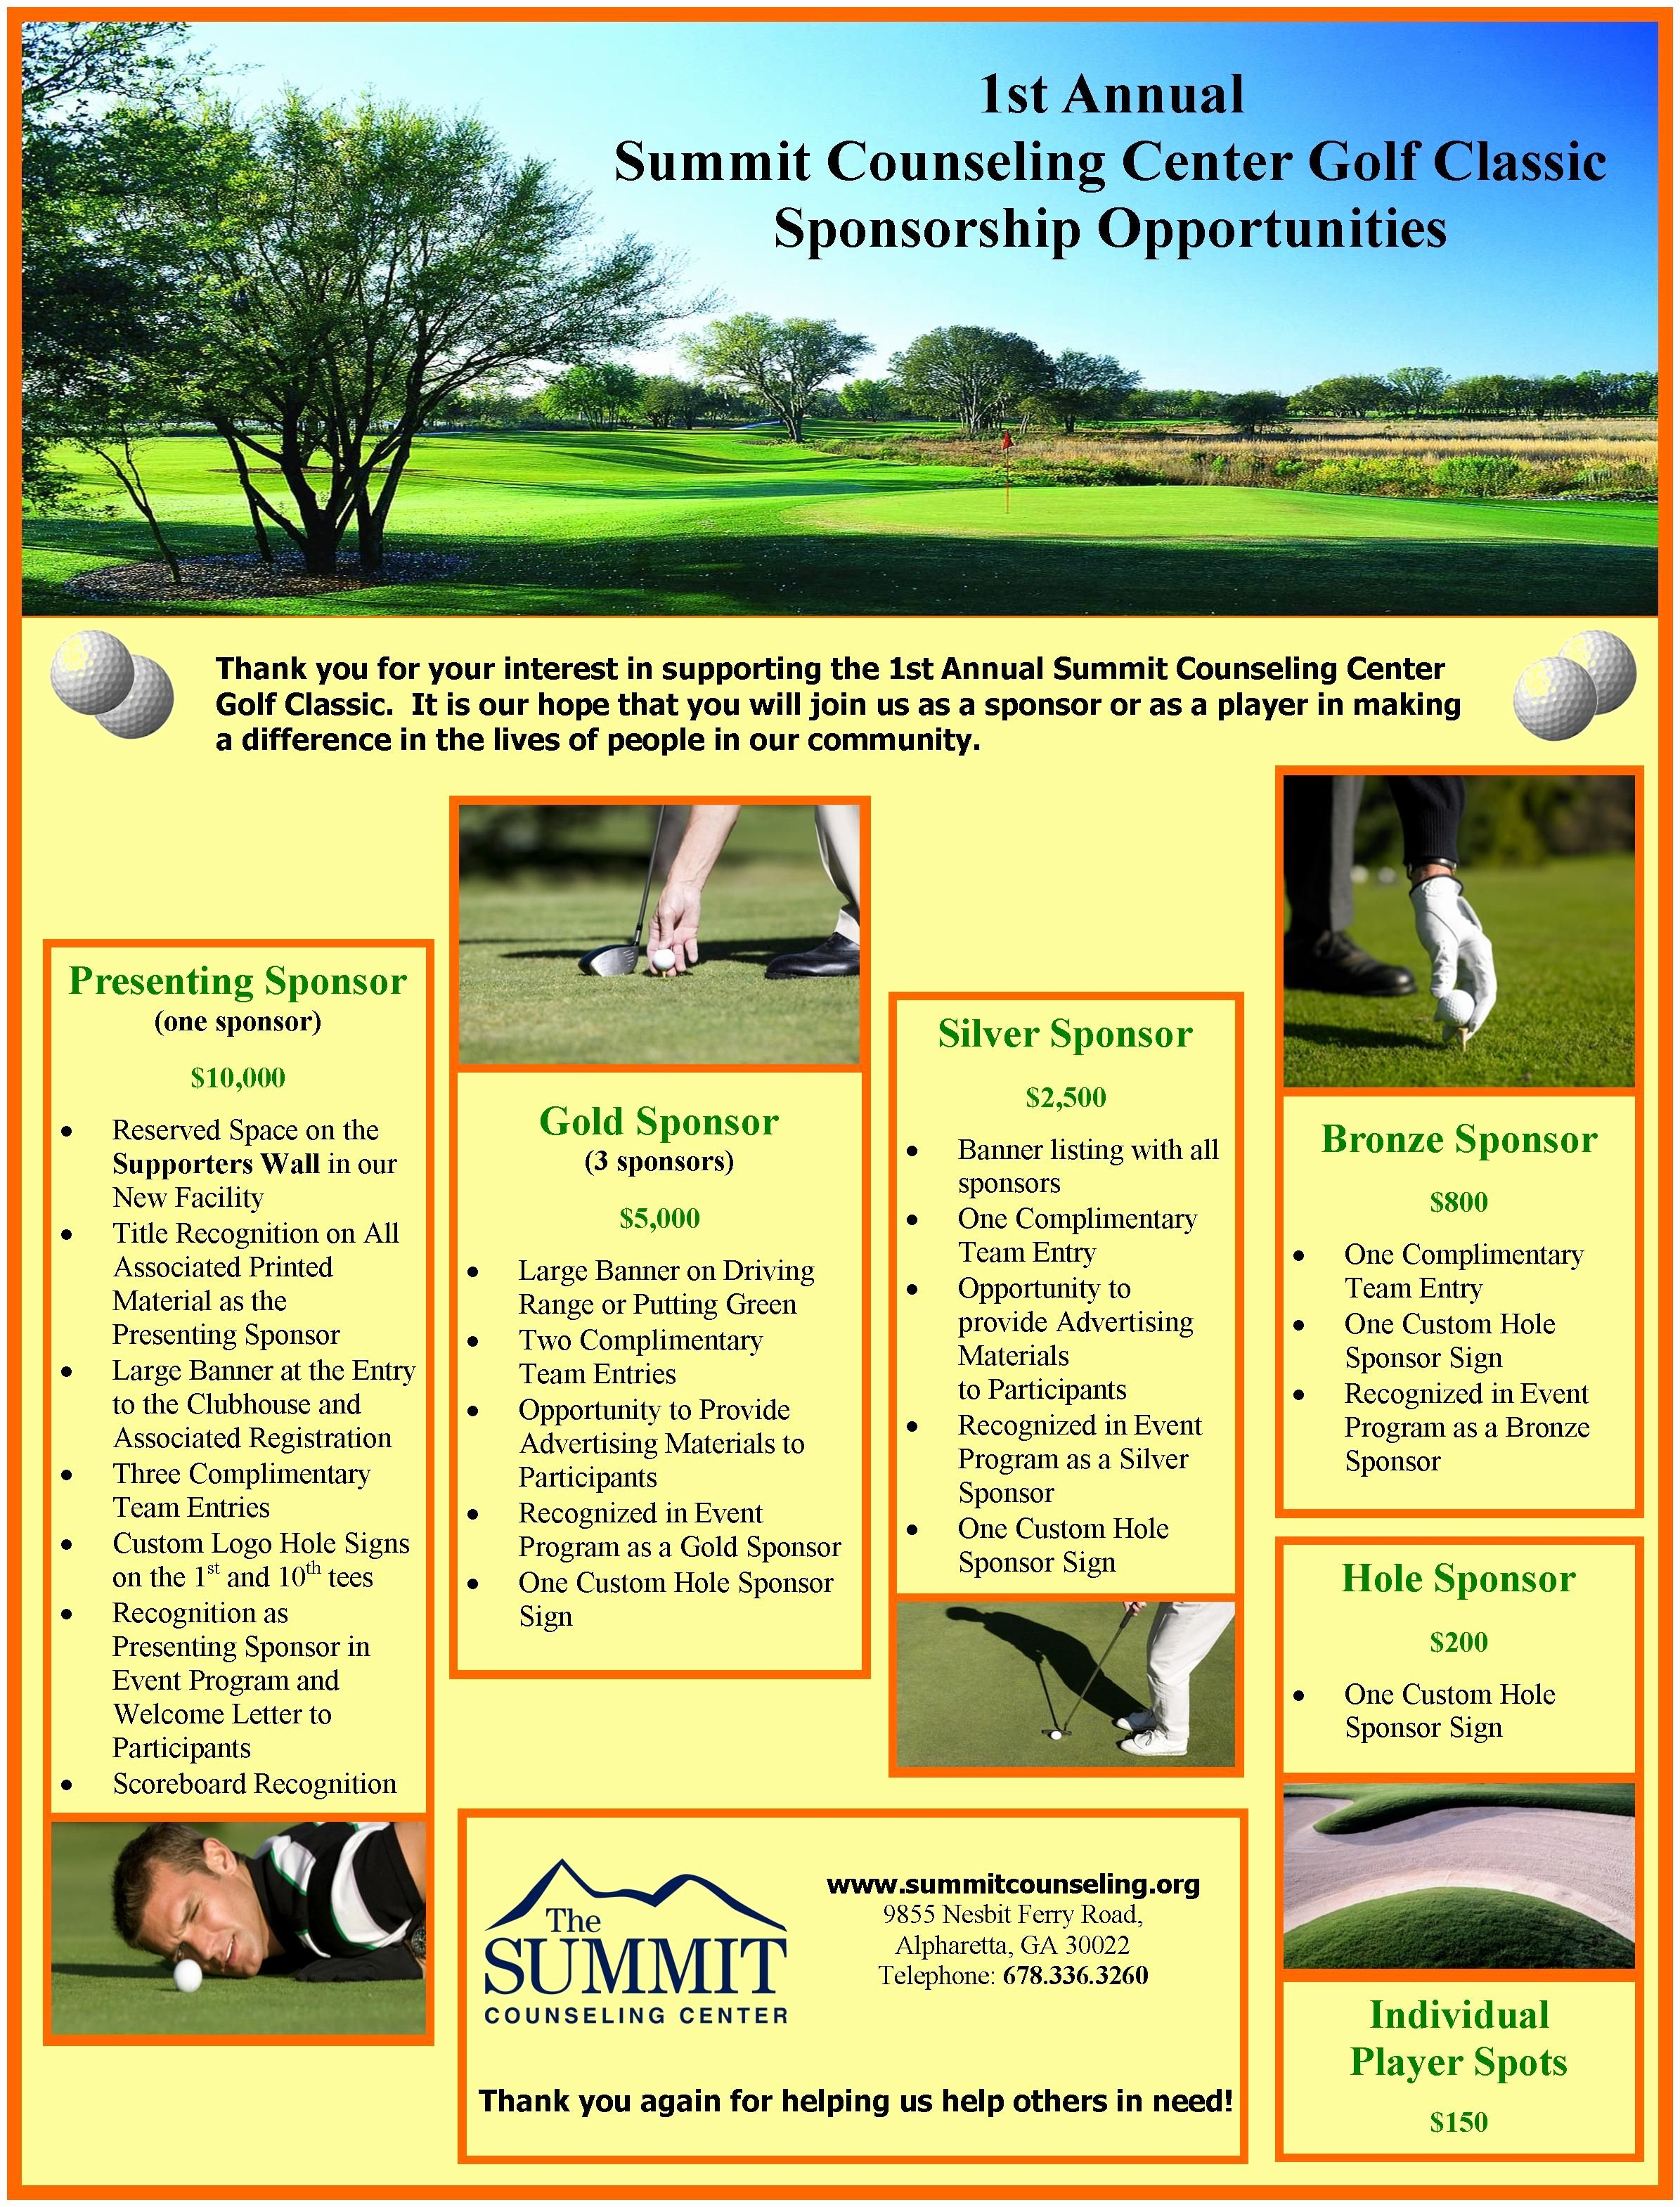 Golf tournament Fundraiser Flyer Best Of Summit Counseling Center Annual Golf tournament Fundraiser Brochure Brochures